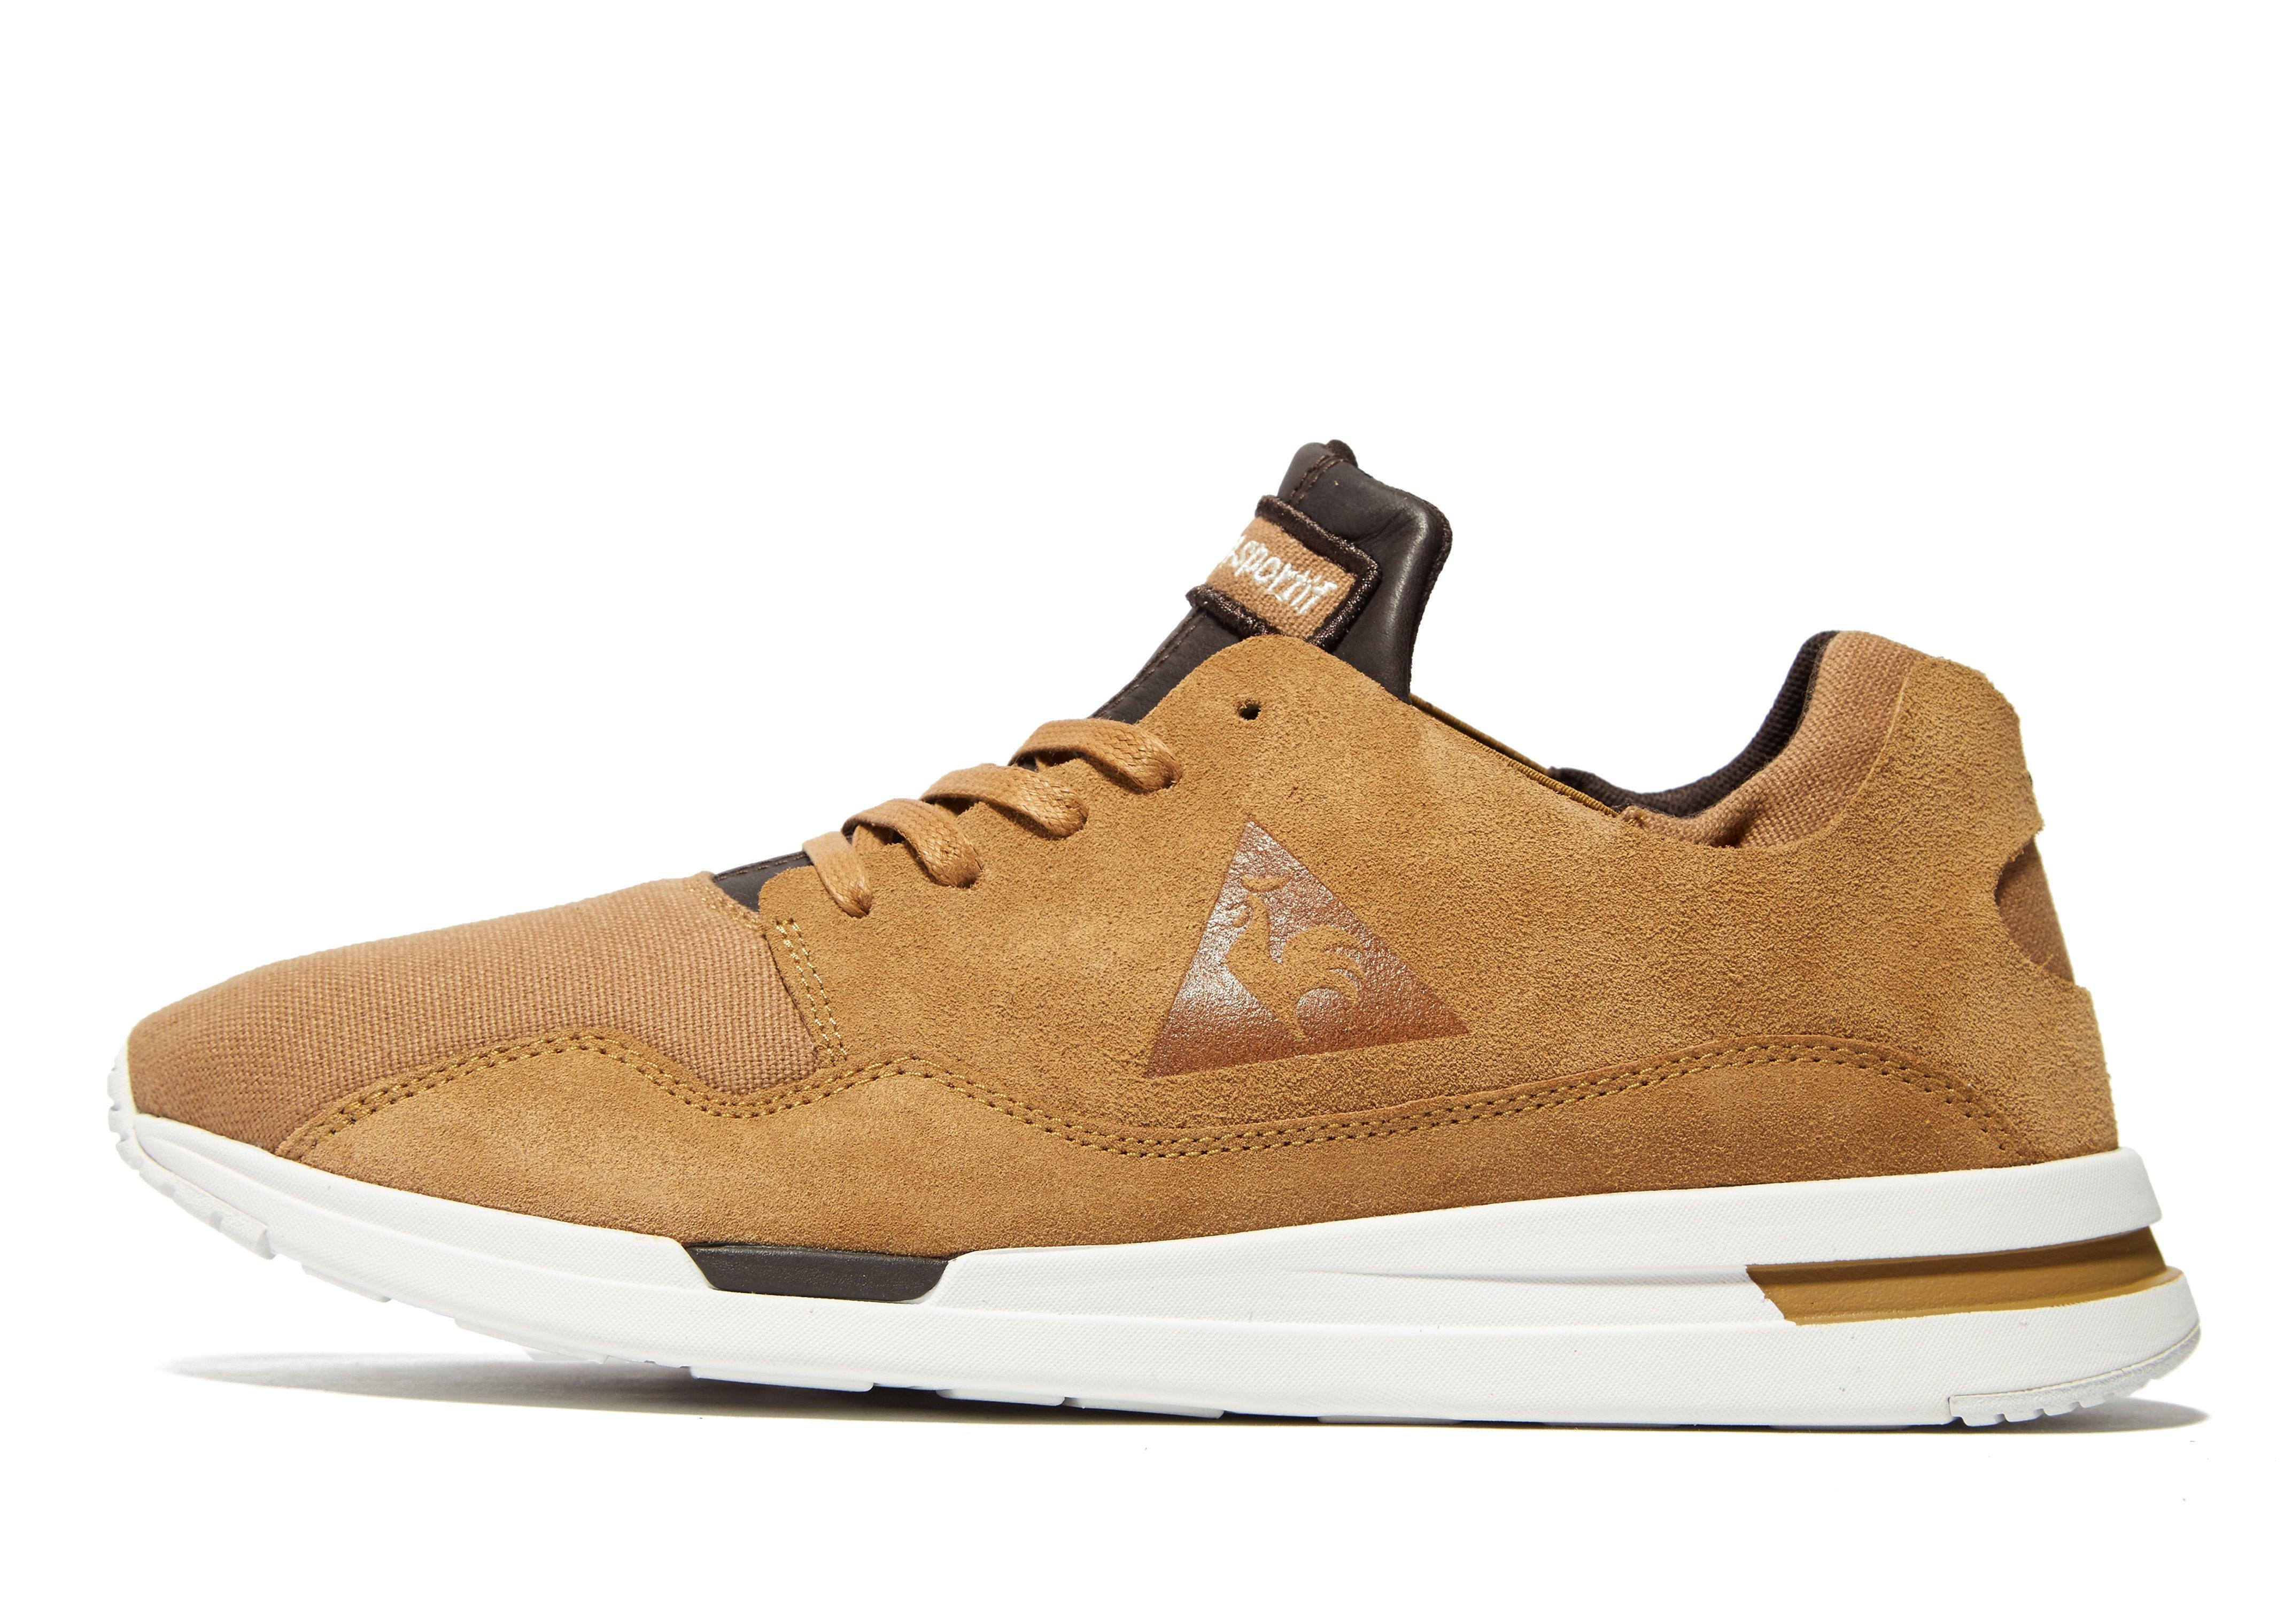 7c2076c0526 Le Coq Sportif Lcs R Pure Mono Luxe for Men - Lyst